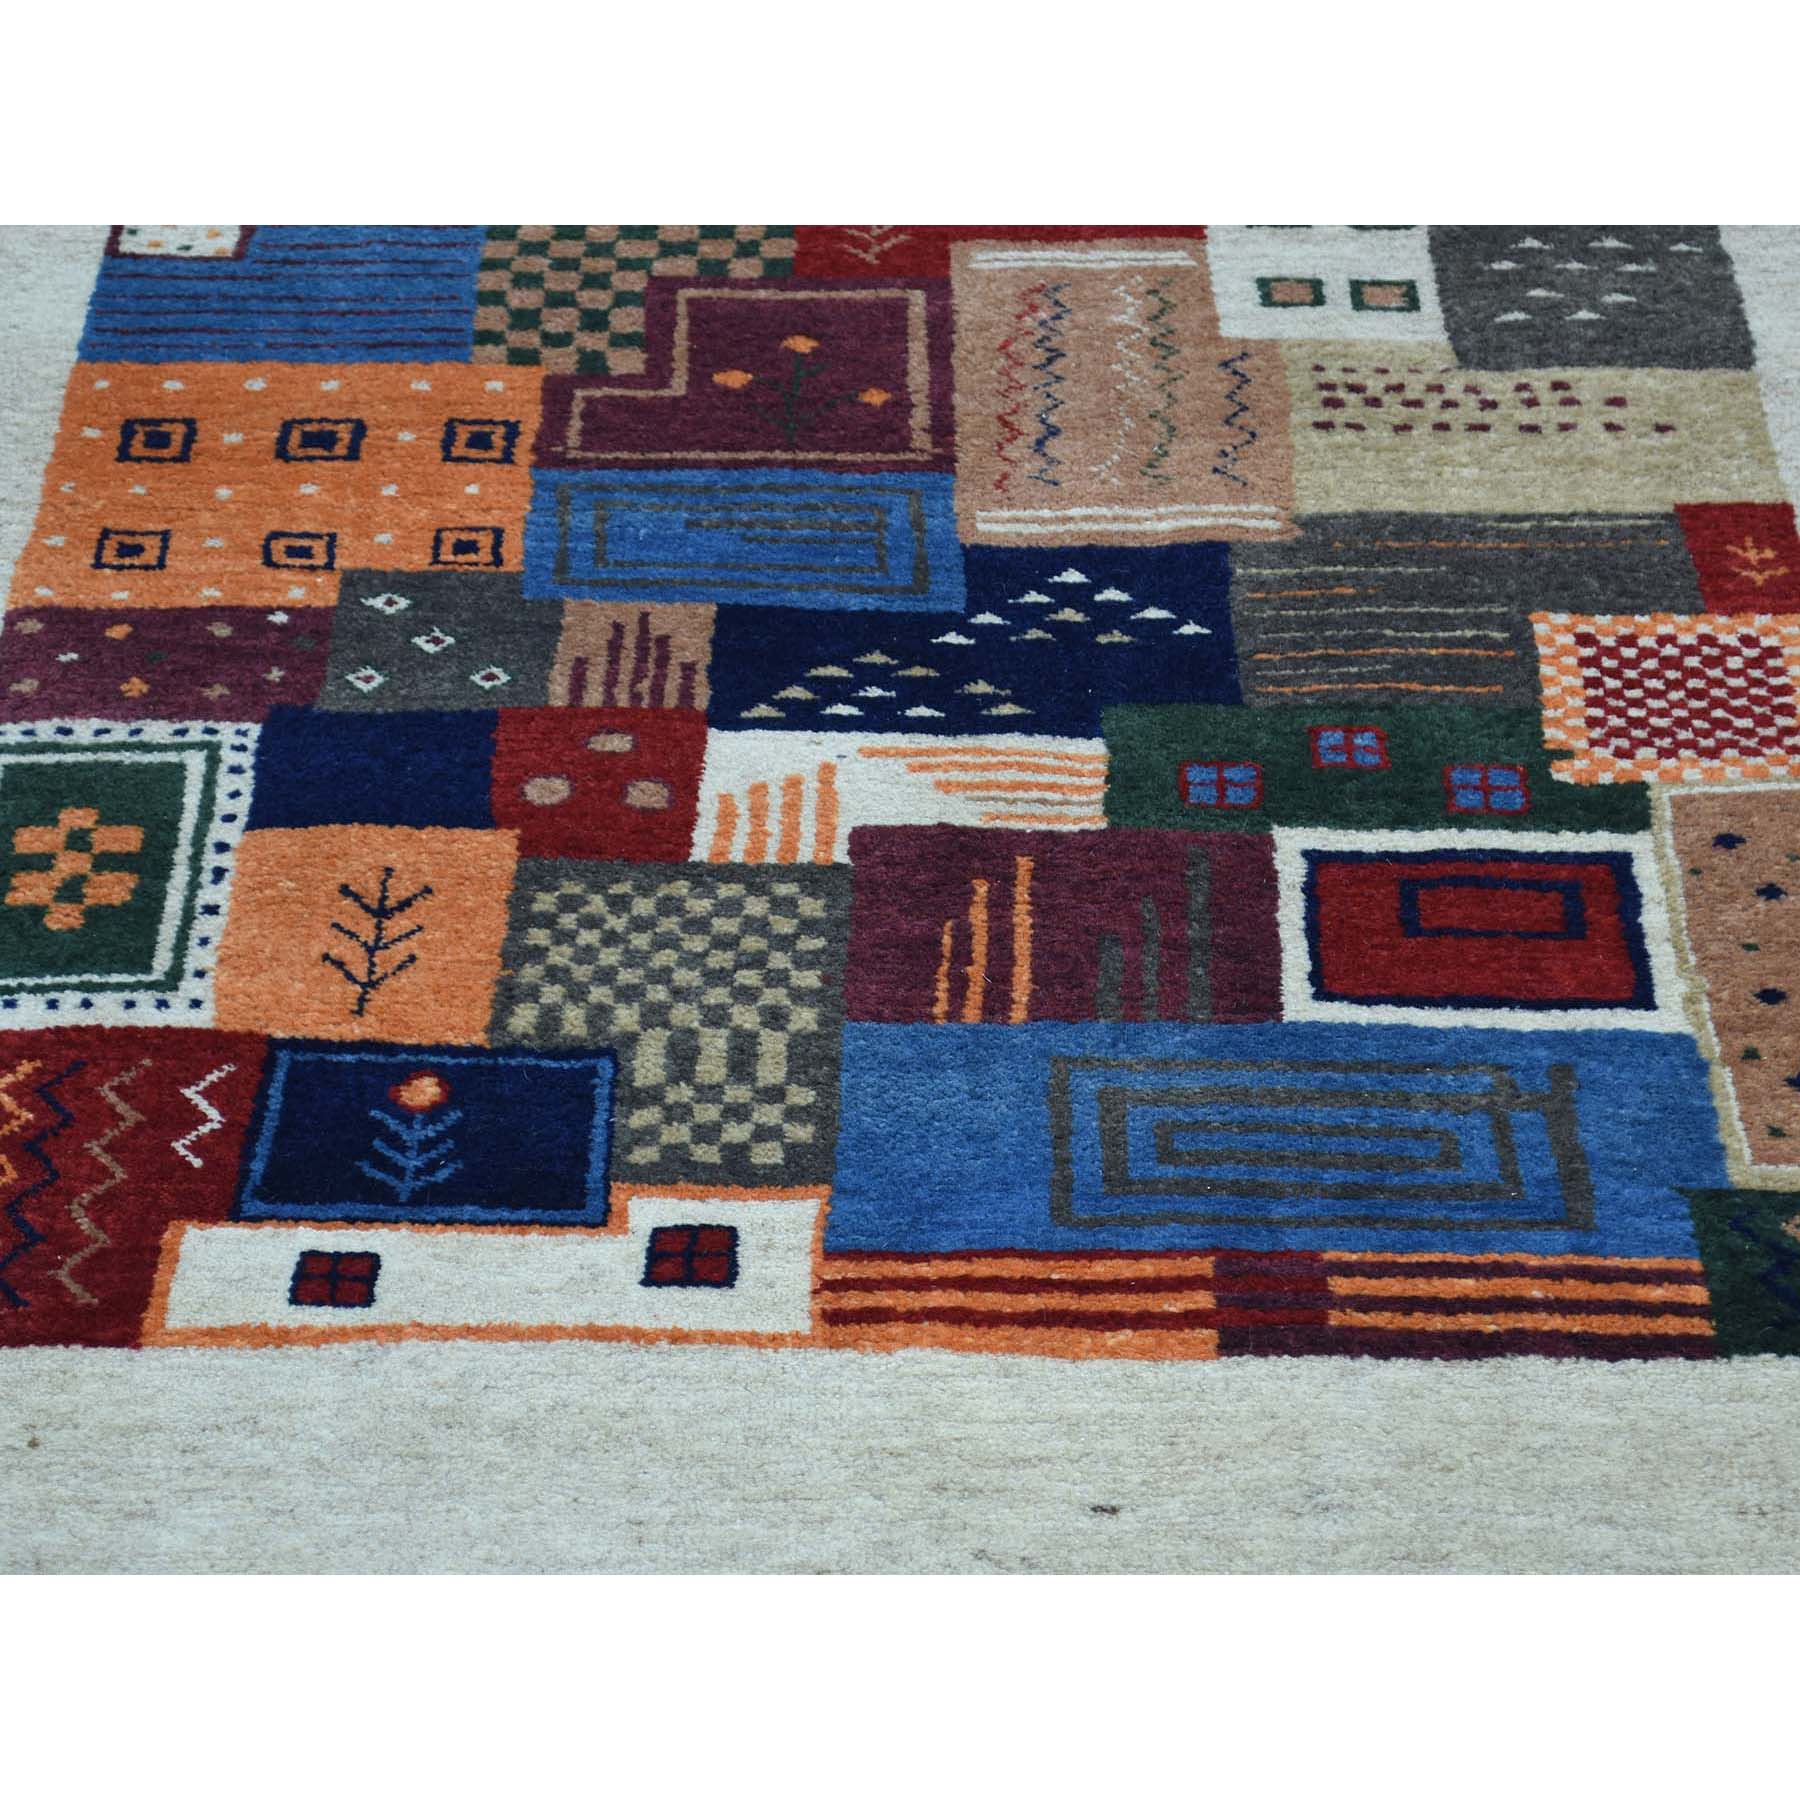 2-x3- Hand-Knotted Persian Wool Lori Buft Gabbeh Patchwork Design Rug